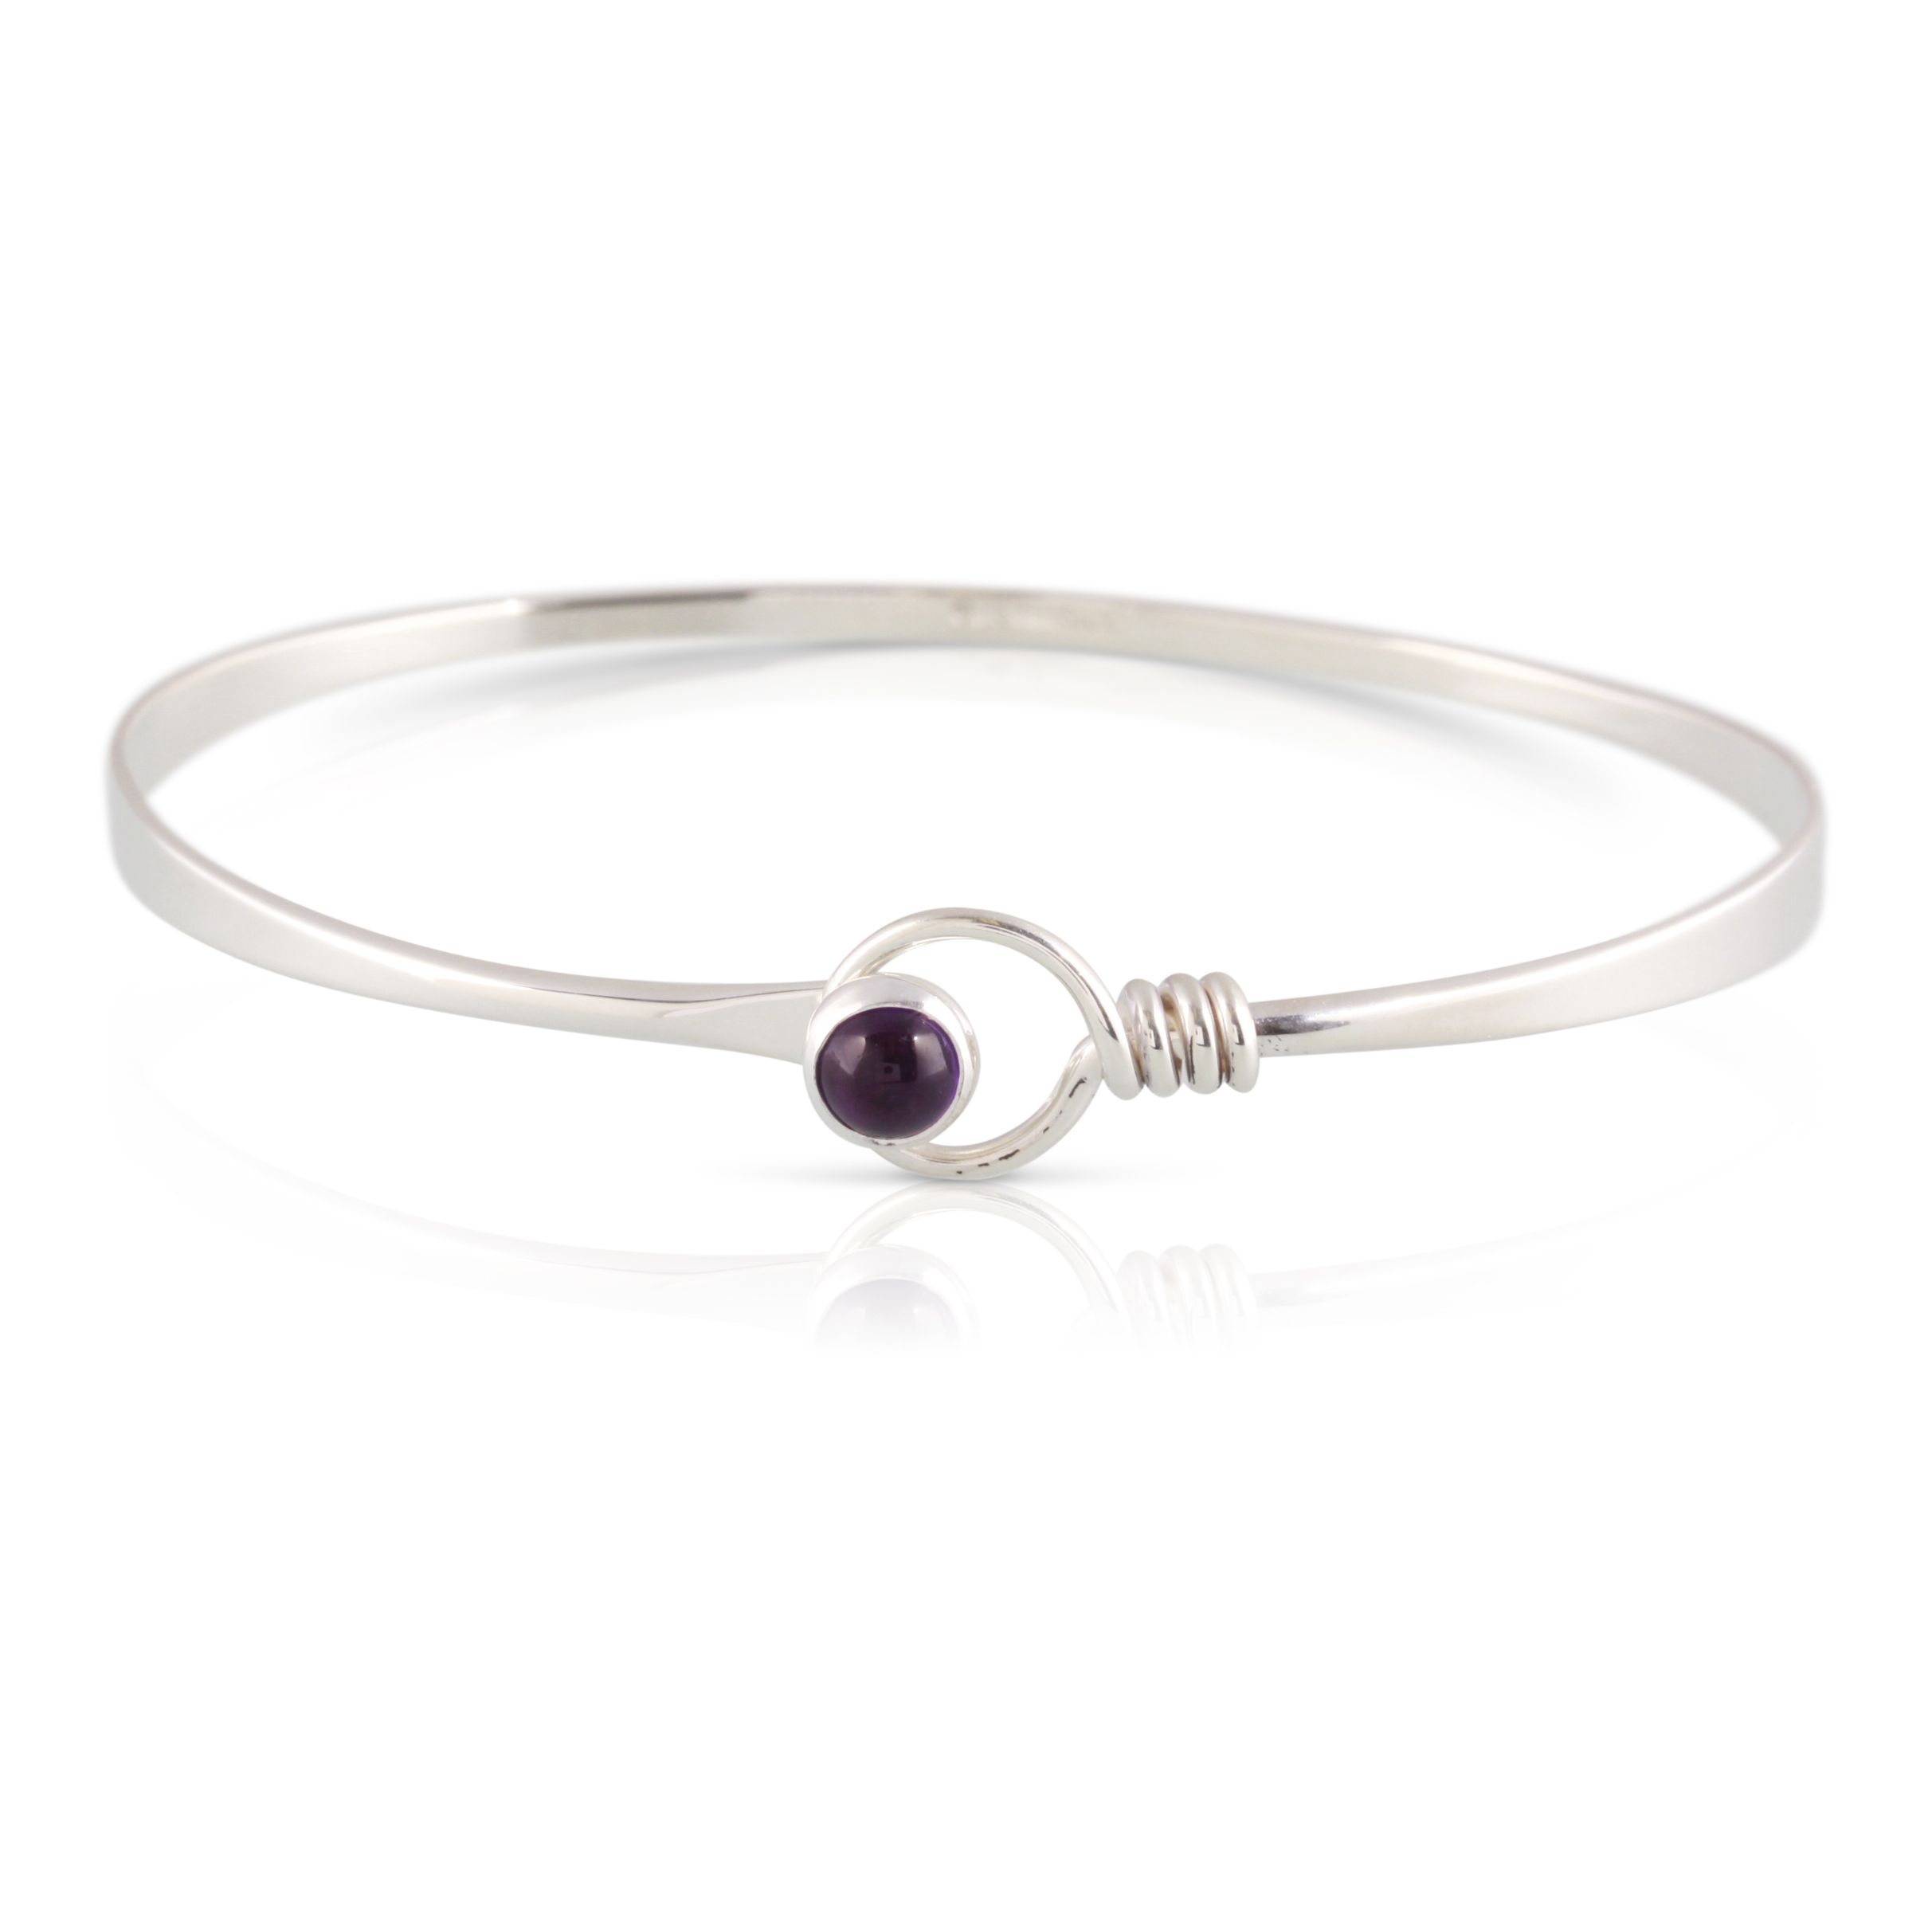 bracelets moeller chain sterling bangles jeweler f shop bangle amethyst classic bracelet and r silver